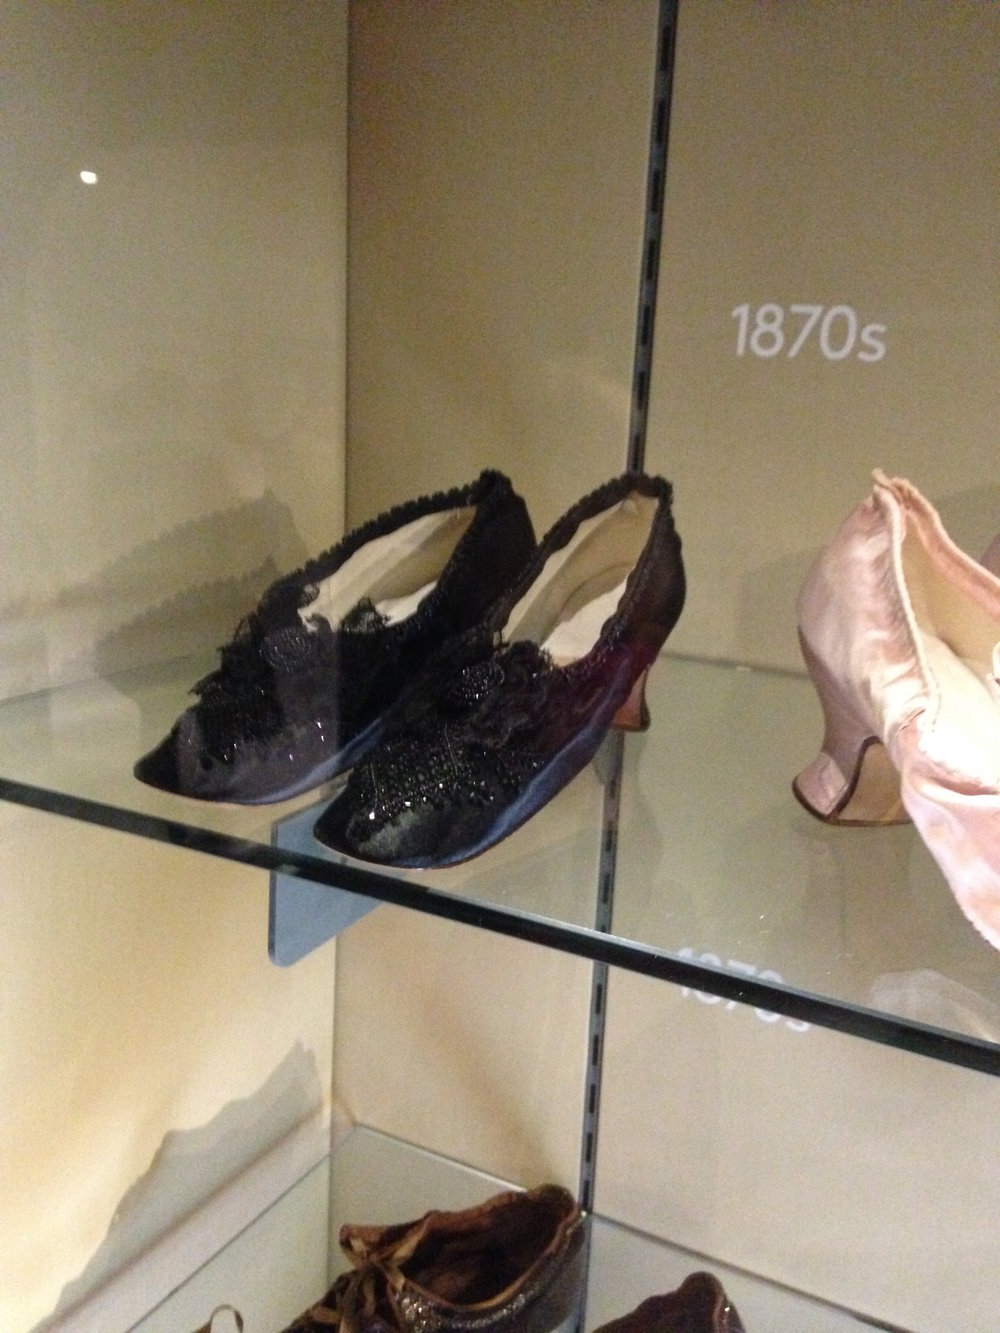 In addition to pieces of clothing, the Bath Fashion Museum also has a collection of European shoes that were fascinating to look at.